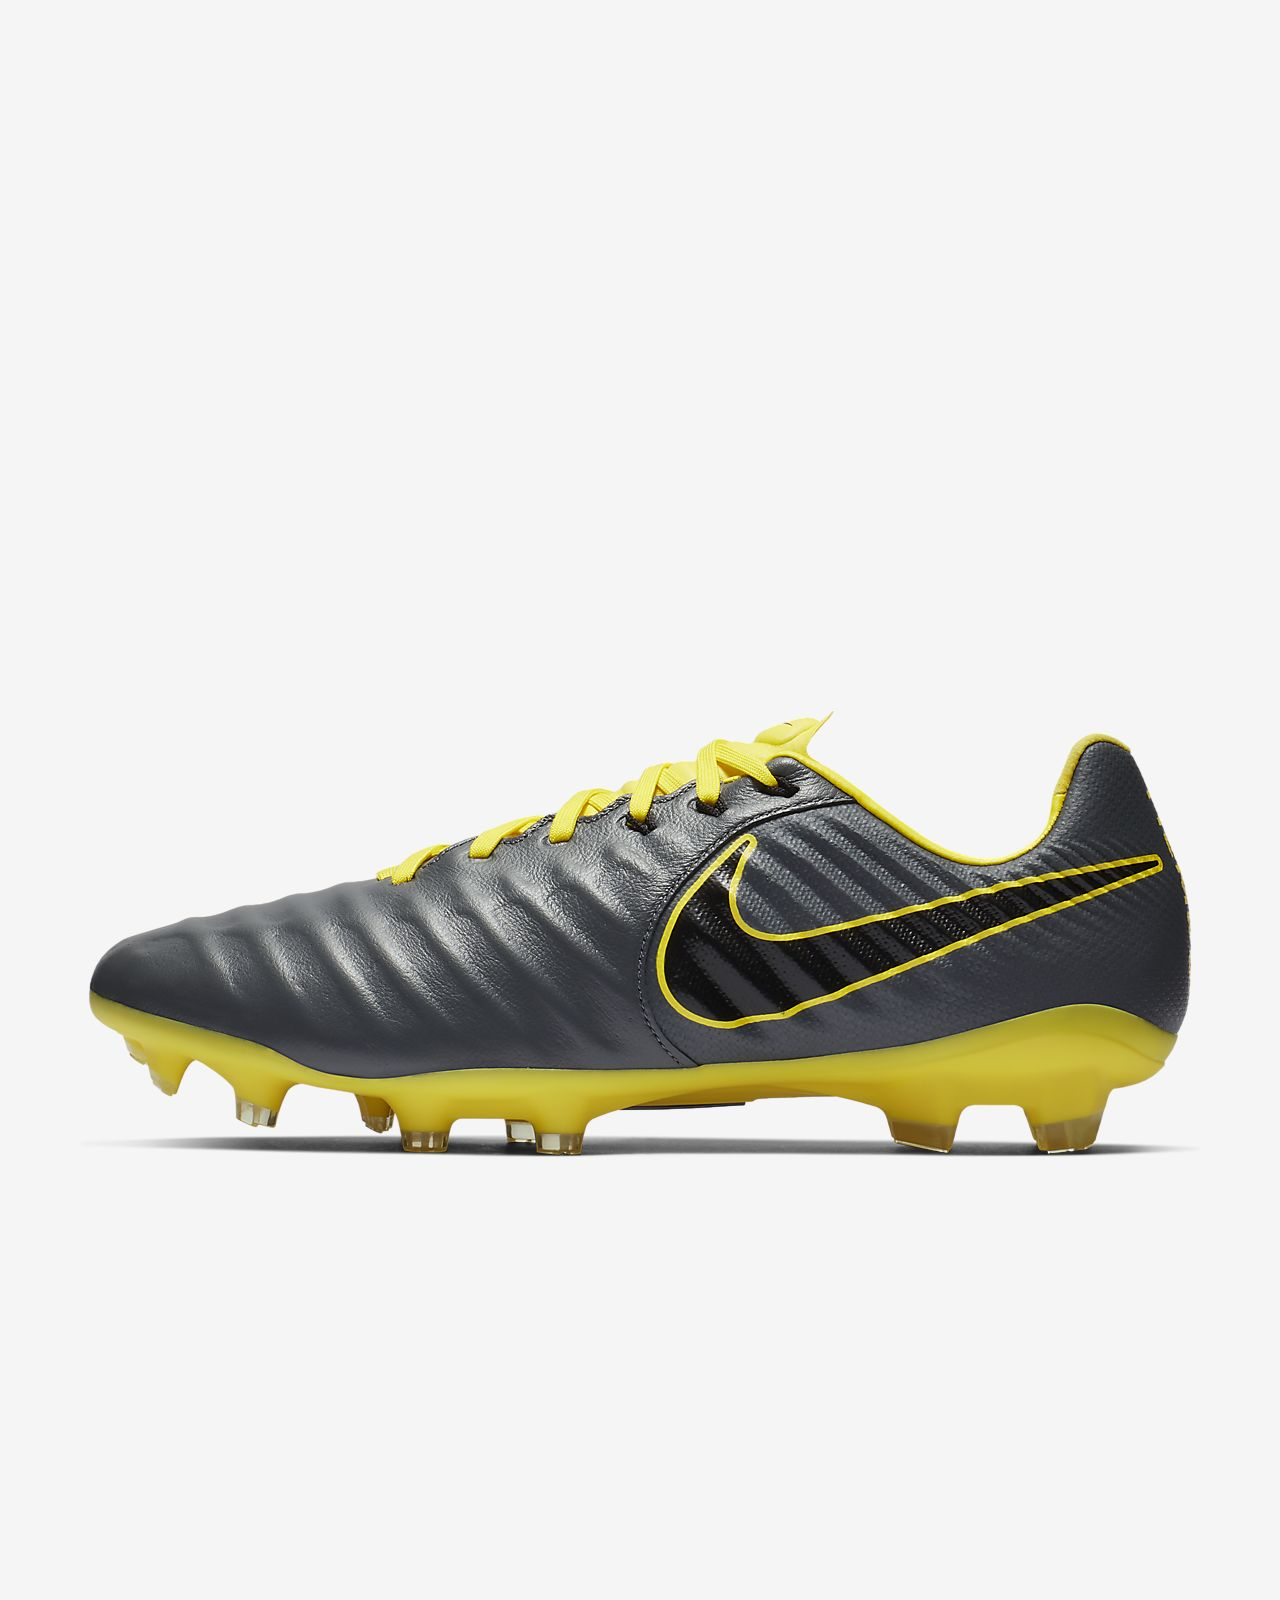 Nike Legend 7 Pro FG Firm-Ground Soccer Cleat